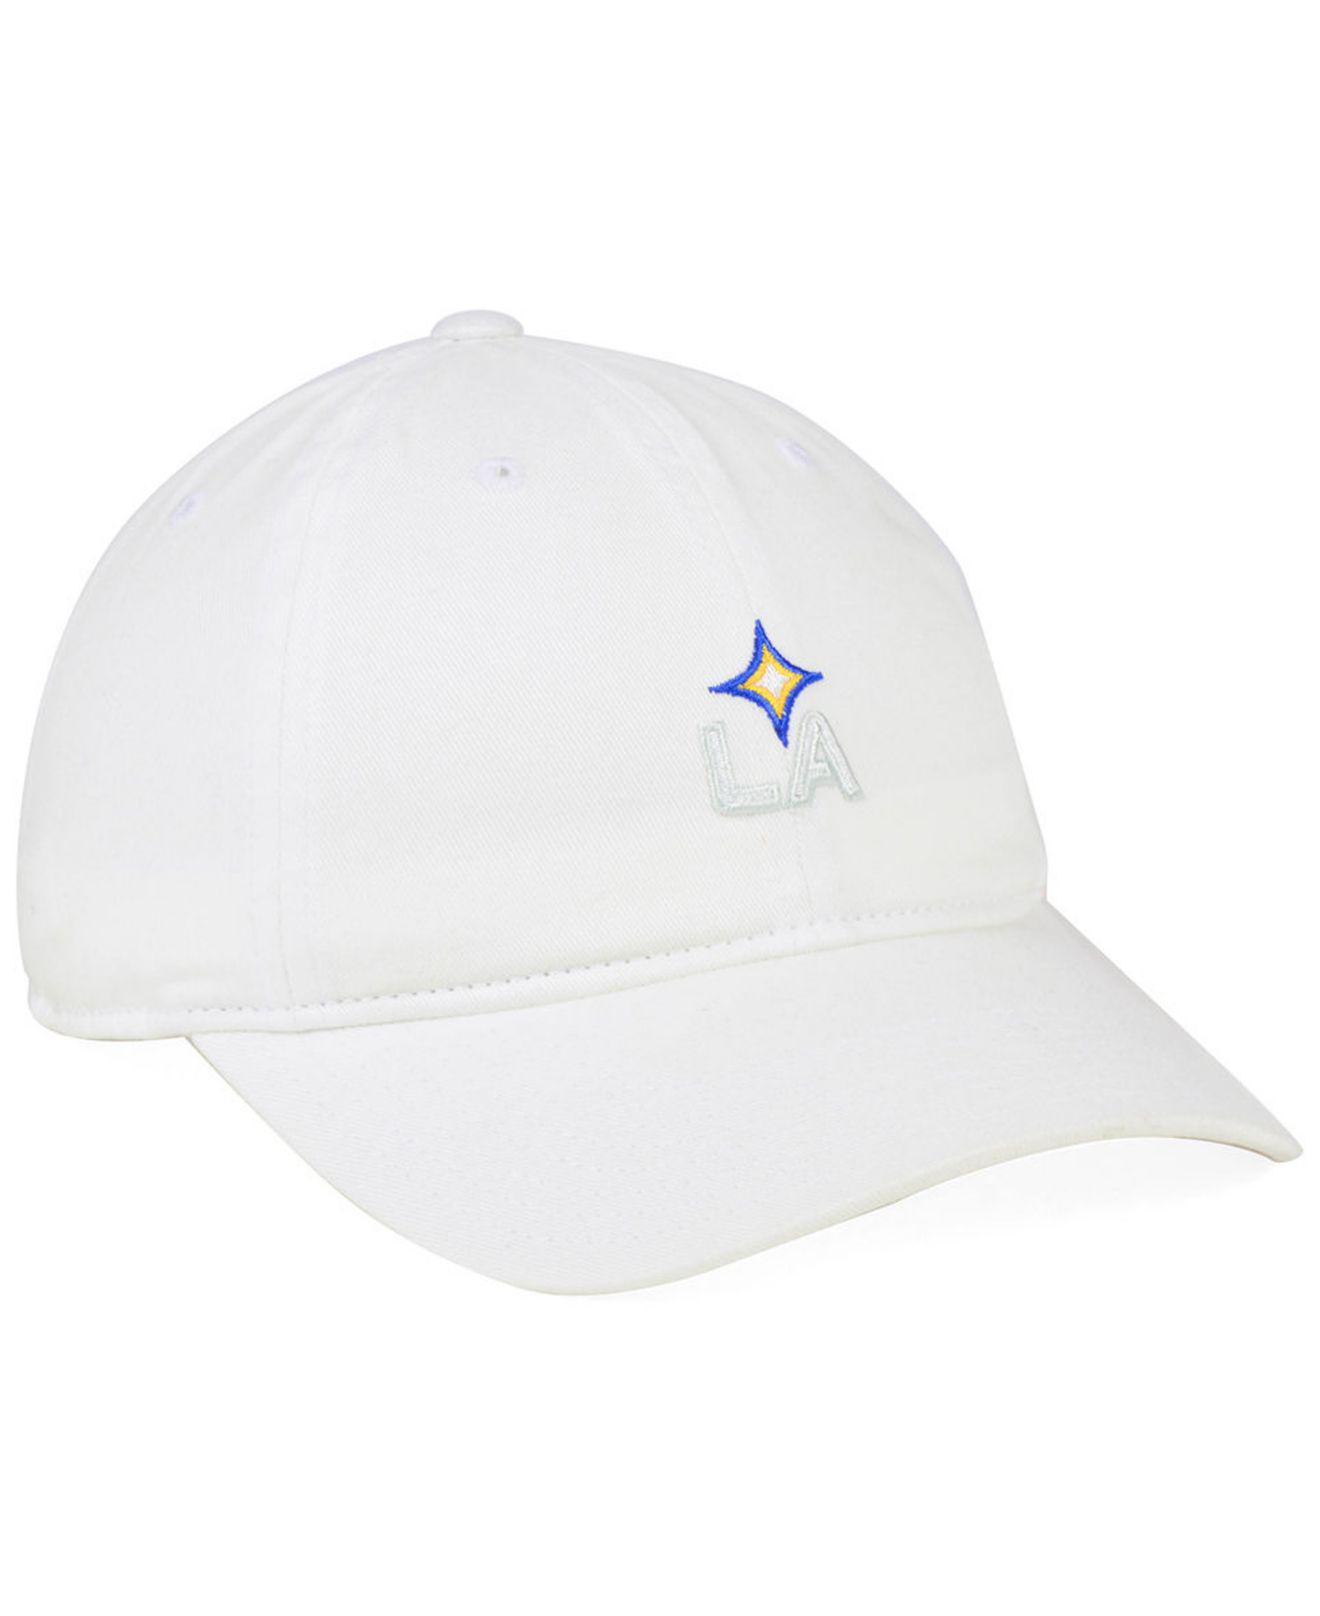 low priced a853f d6dc0 ... where to buy adidas white la galaxy partial logo dad cap for men lyst.  view